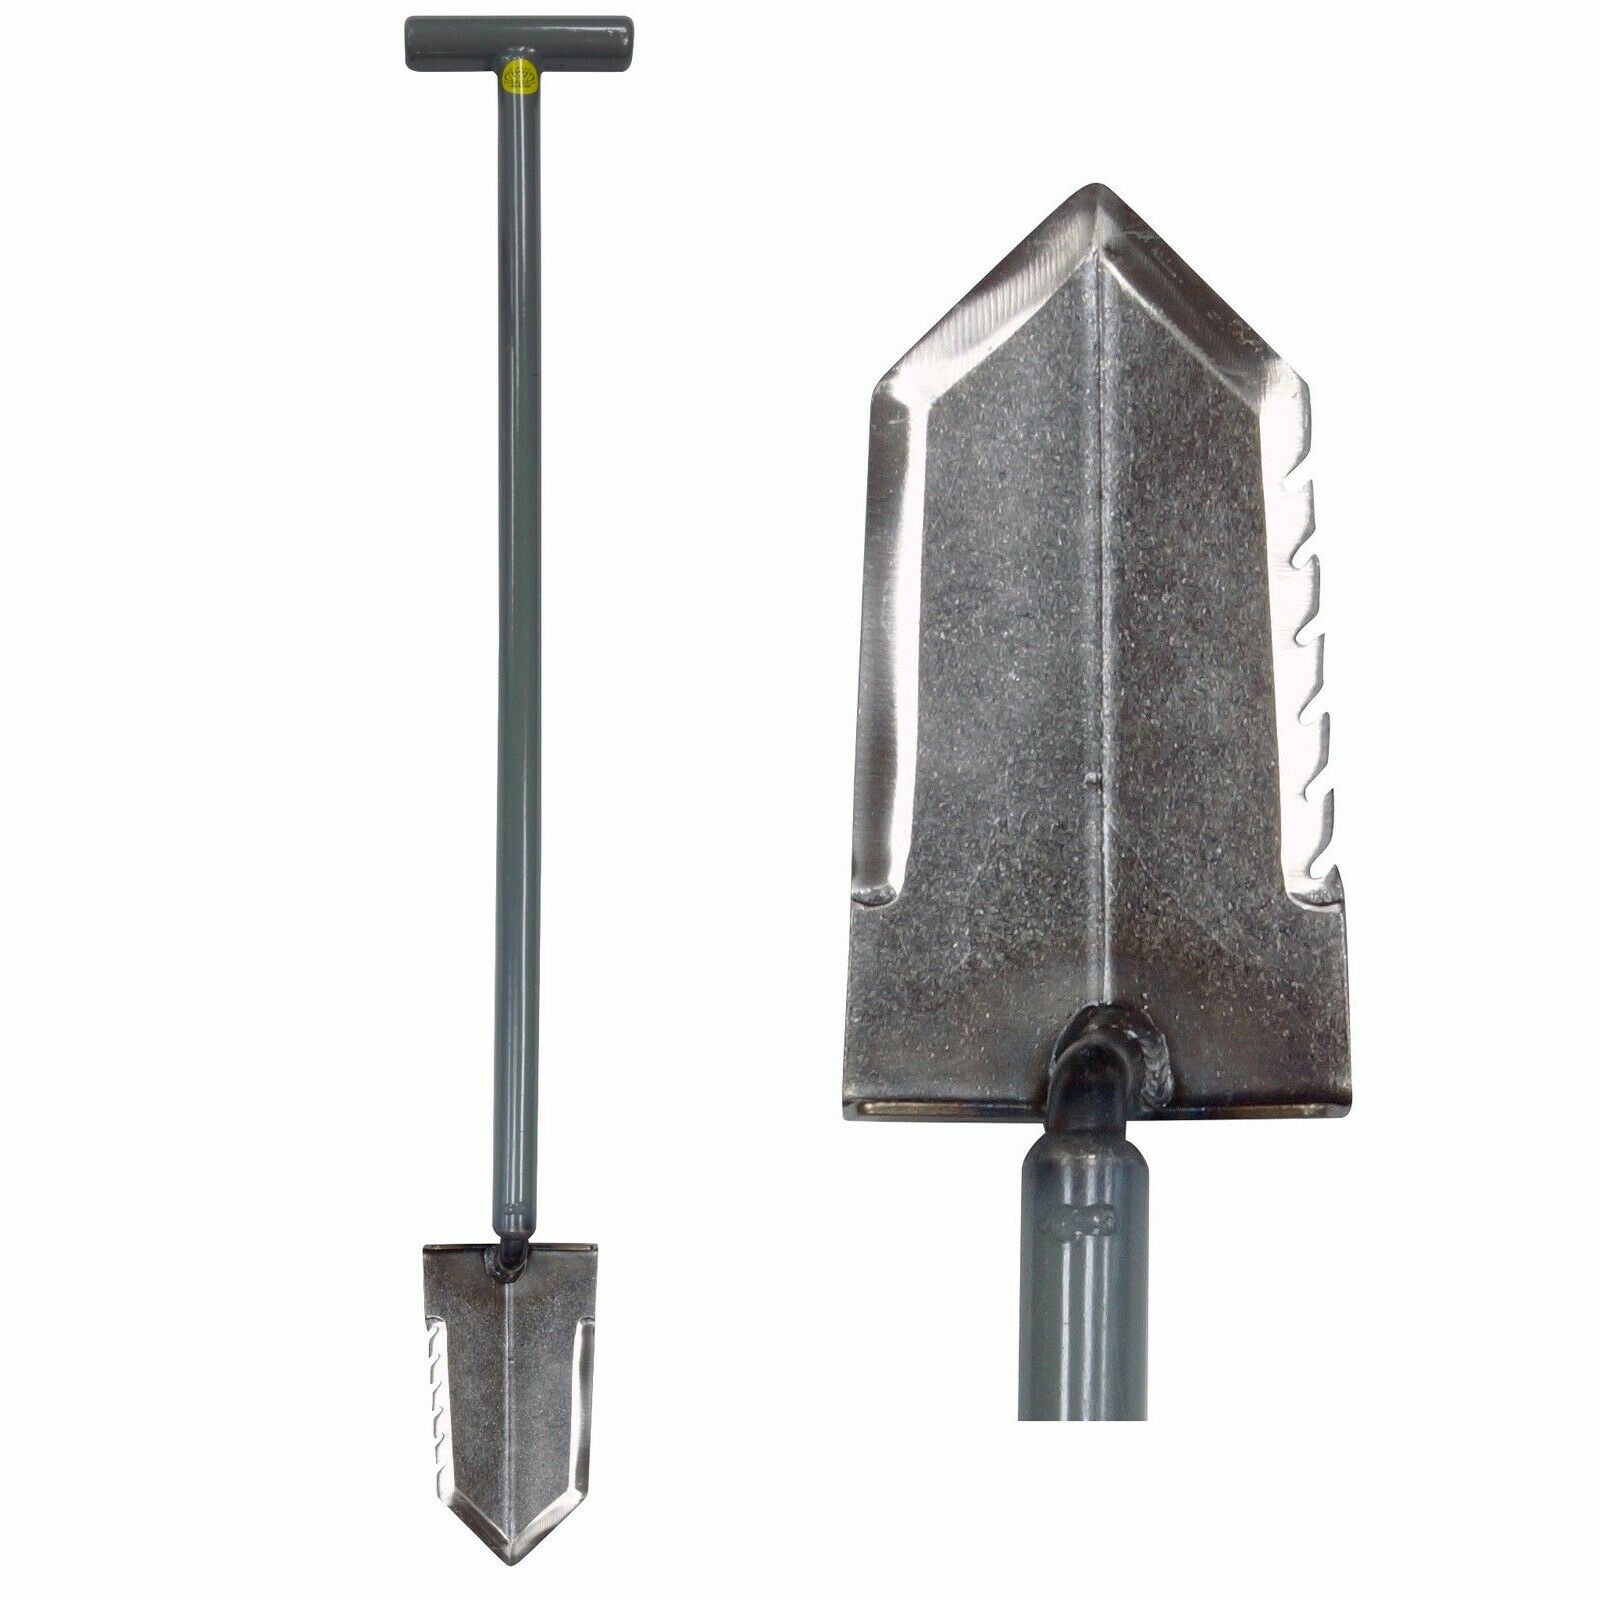 Lesche Ball Handle Heavy Duty Metal Detecting Shovel with Serrated Blade Detector Supply Company 1V/_WWMFG-31-SER